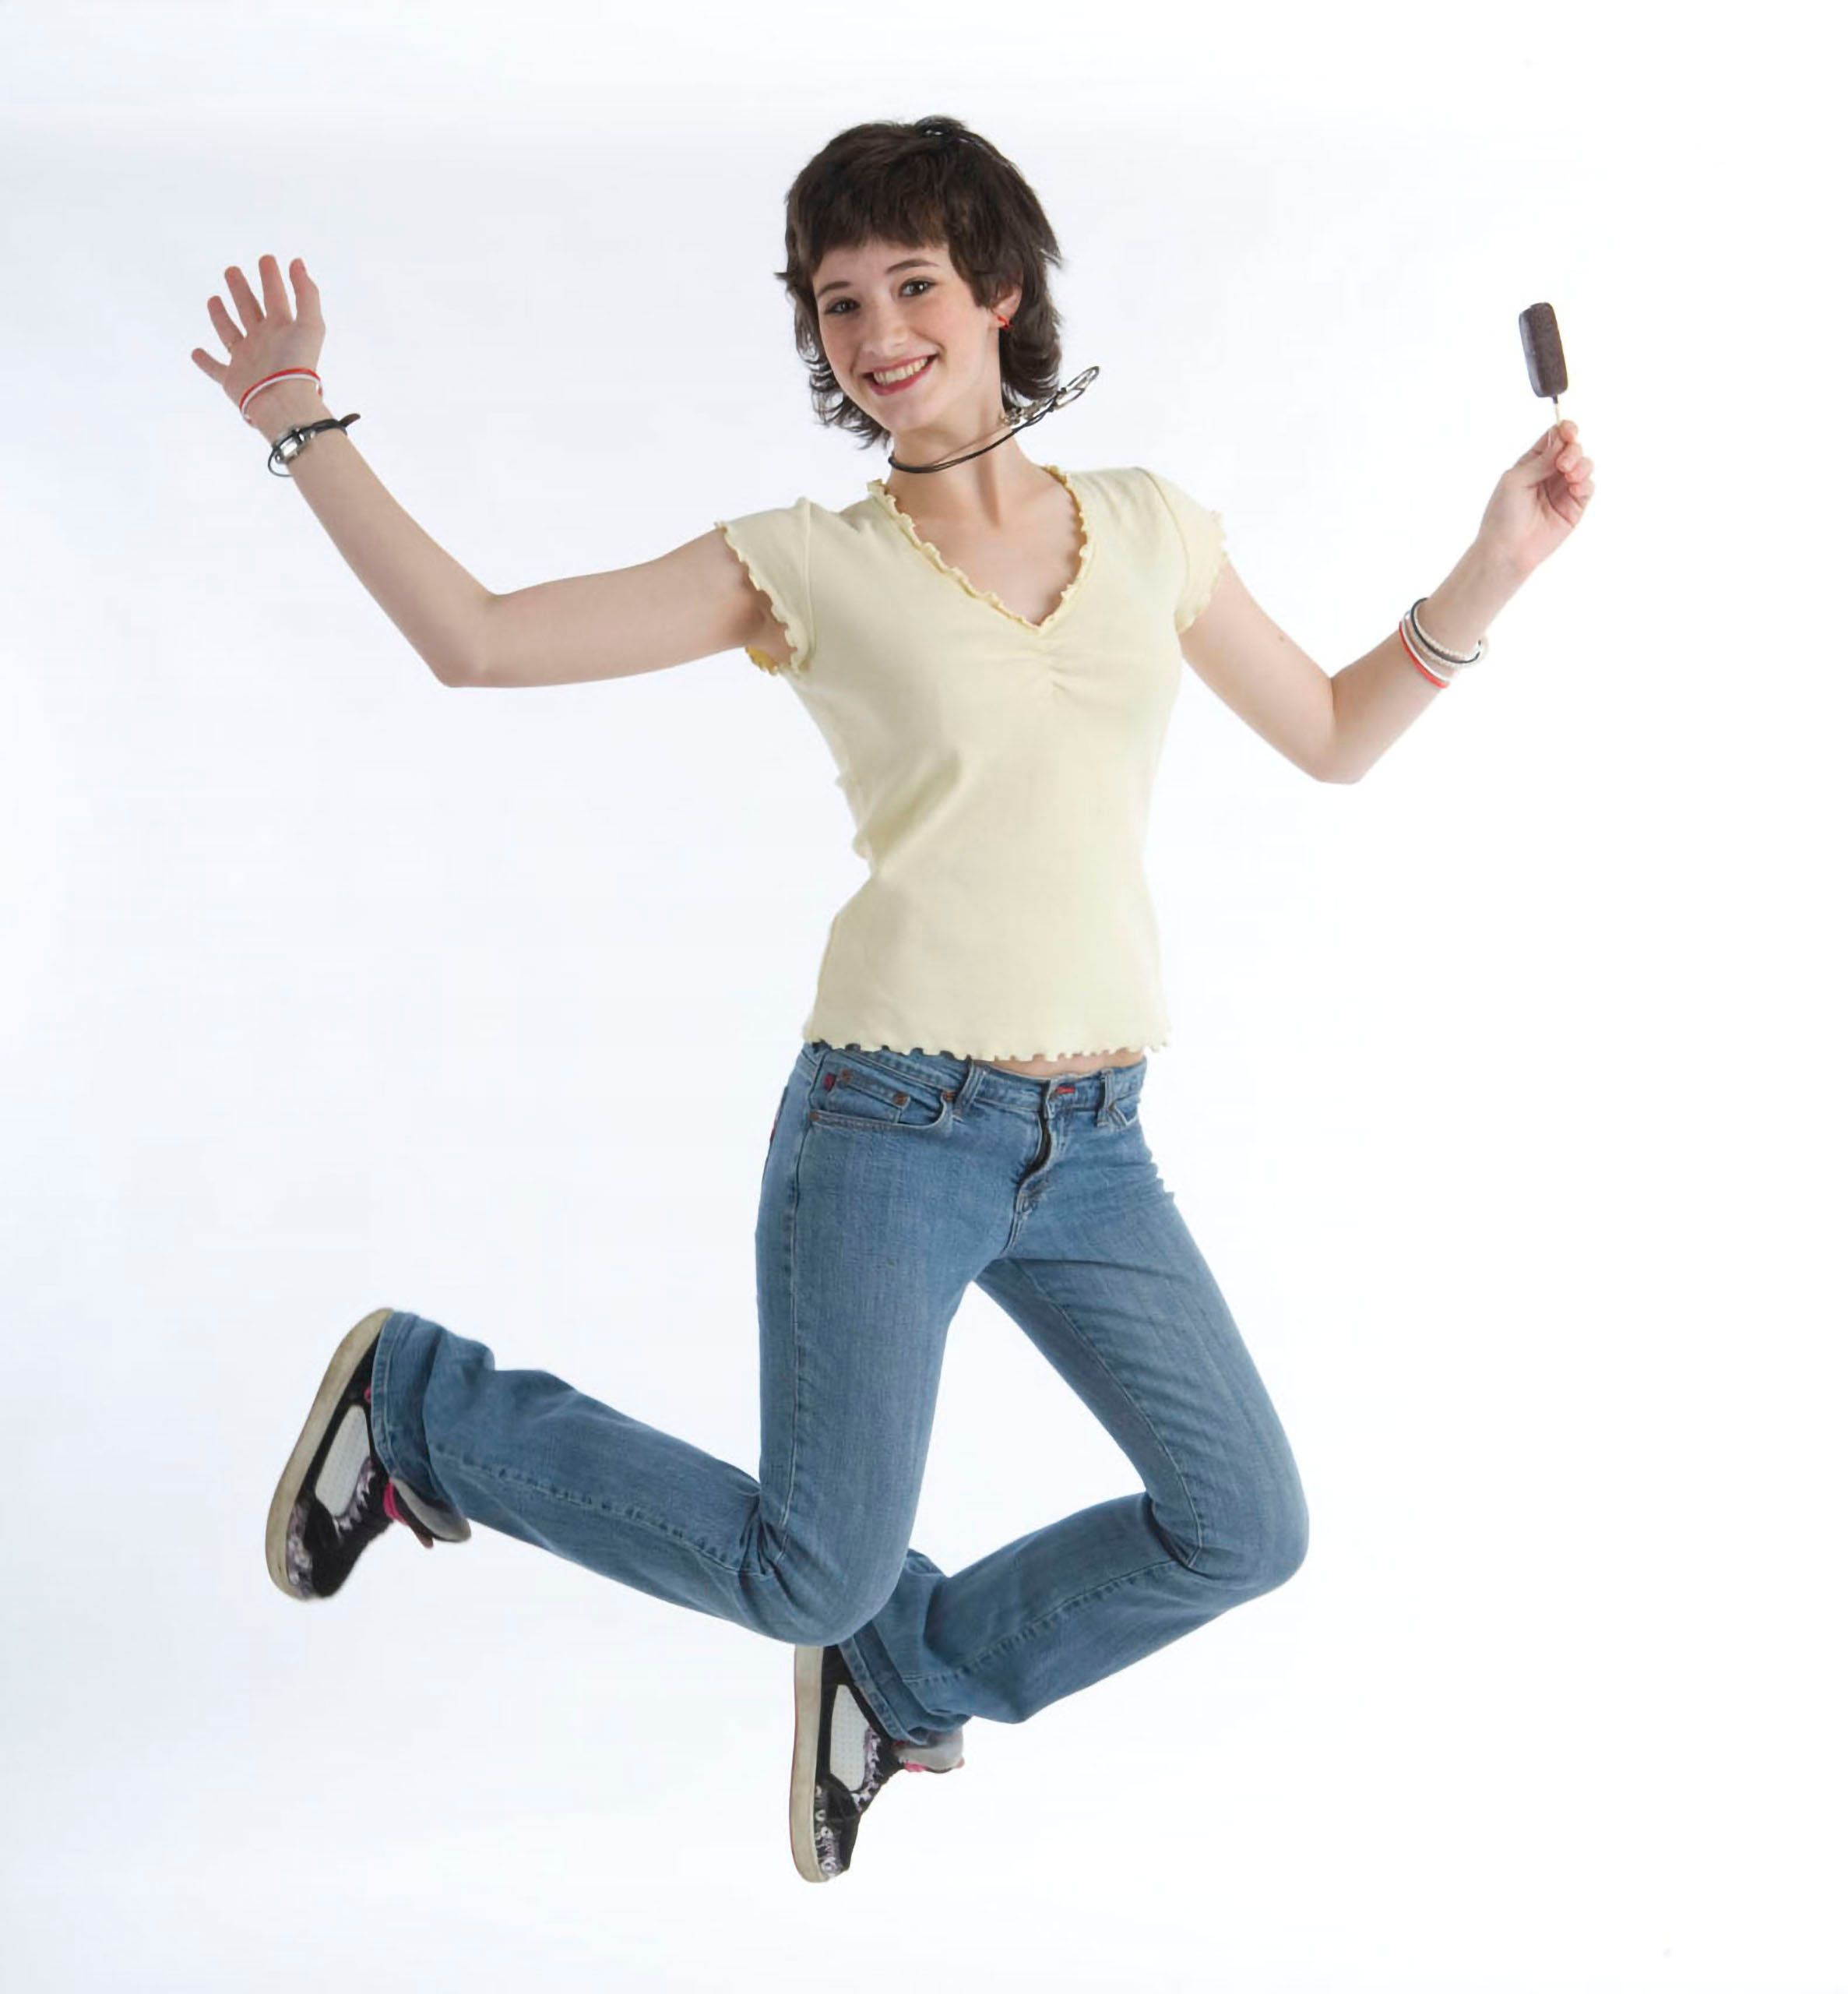 Commercial studio advertising photoshoot young woman  model jumping  for joy